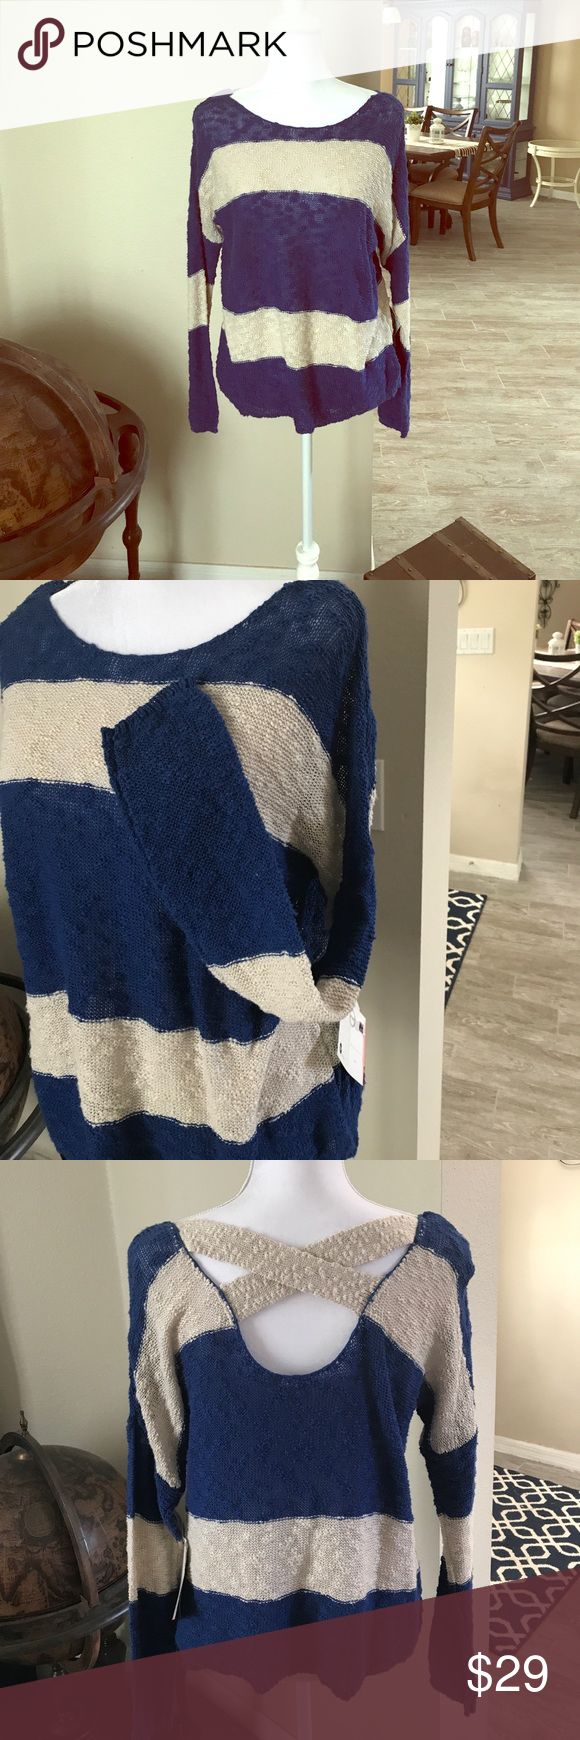 NWT Roxy Beachy Knit Criss Cross Sweater! SzS This wonderful sweater is light and delicately woven in a gorgeous nautical blue and cream. It has criss cross detailing on the scoop back and the fit is a body skimming drape - would be great over your bikini out on the boat this summer or with a pair of cut off shorts and flip flops at the resort! 100% Cotton. From a smoke free home! 🍷 Roxy Tops